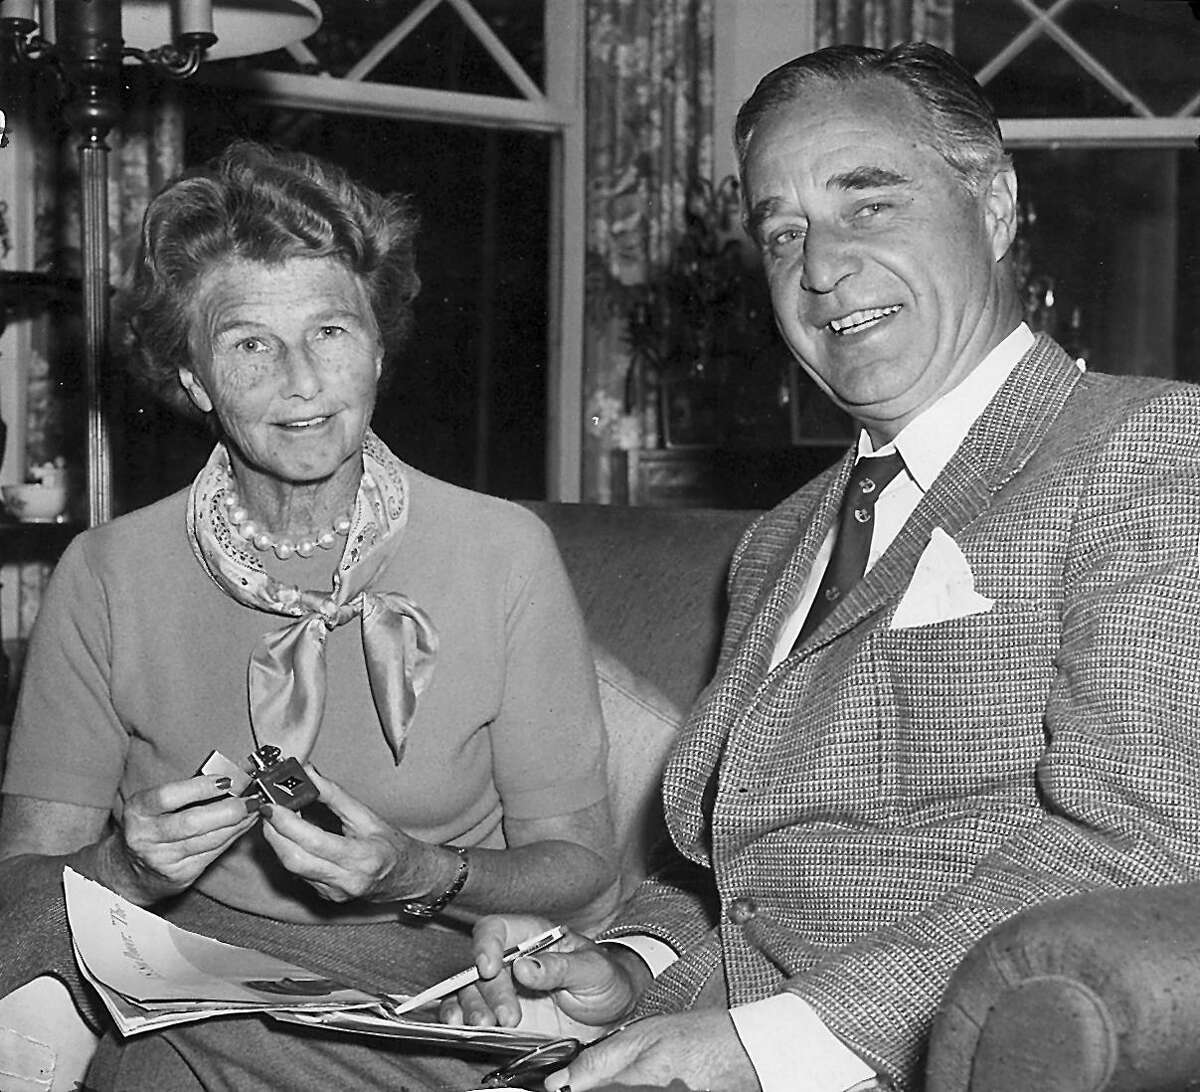 Dorothy Walker Bush, left, and Prescott Bush Sr. This was originally published in Greenwich Time on April 16, 1975.